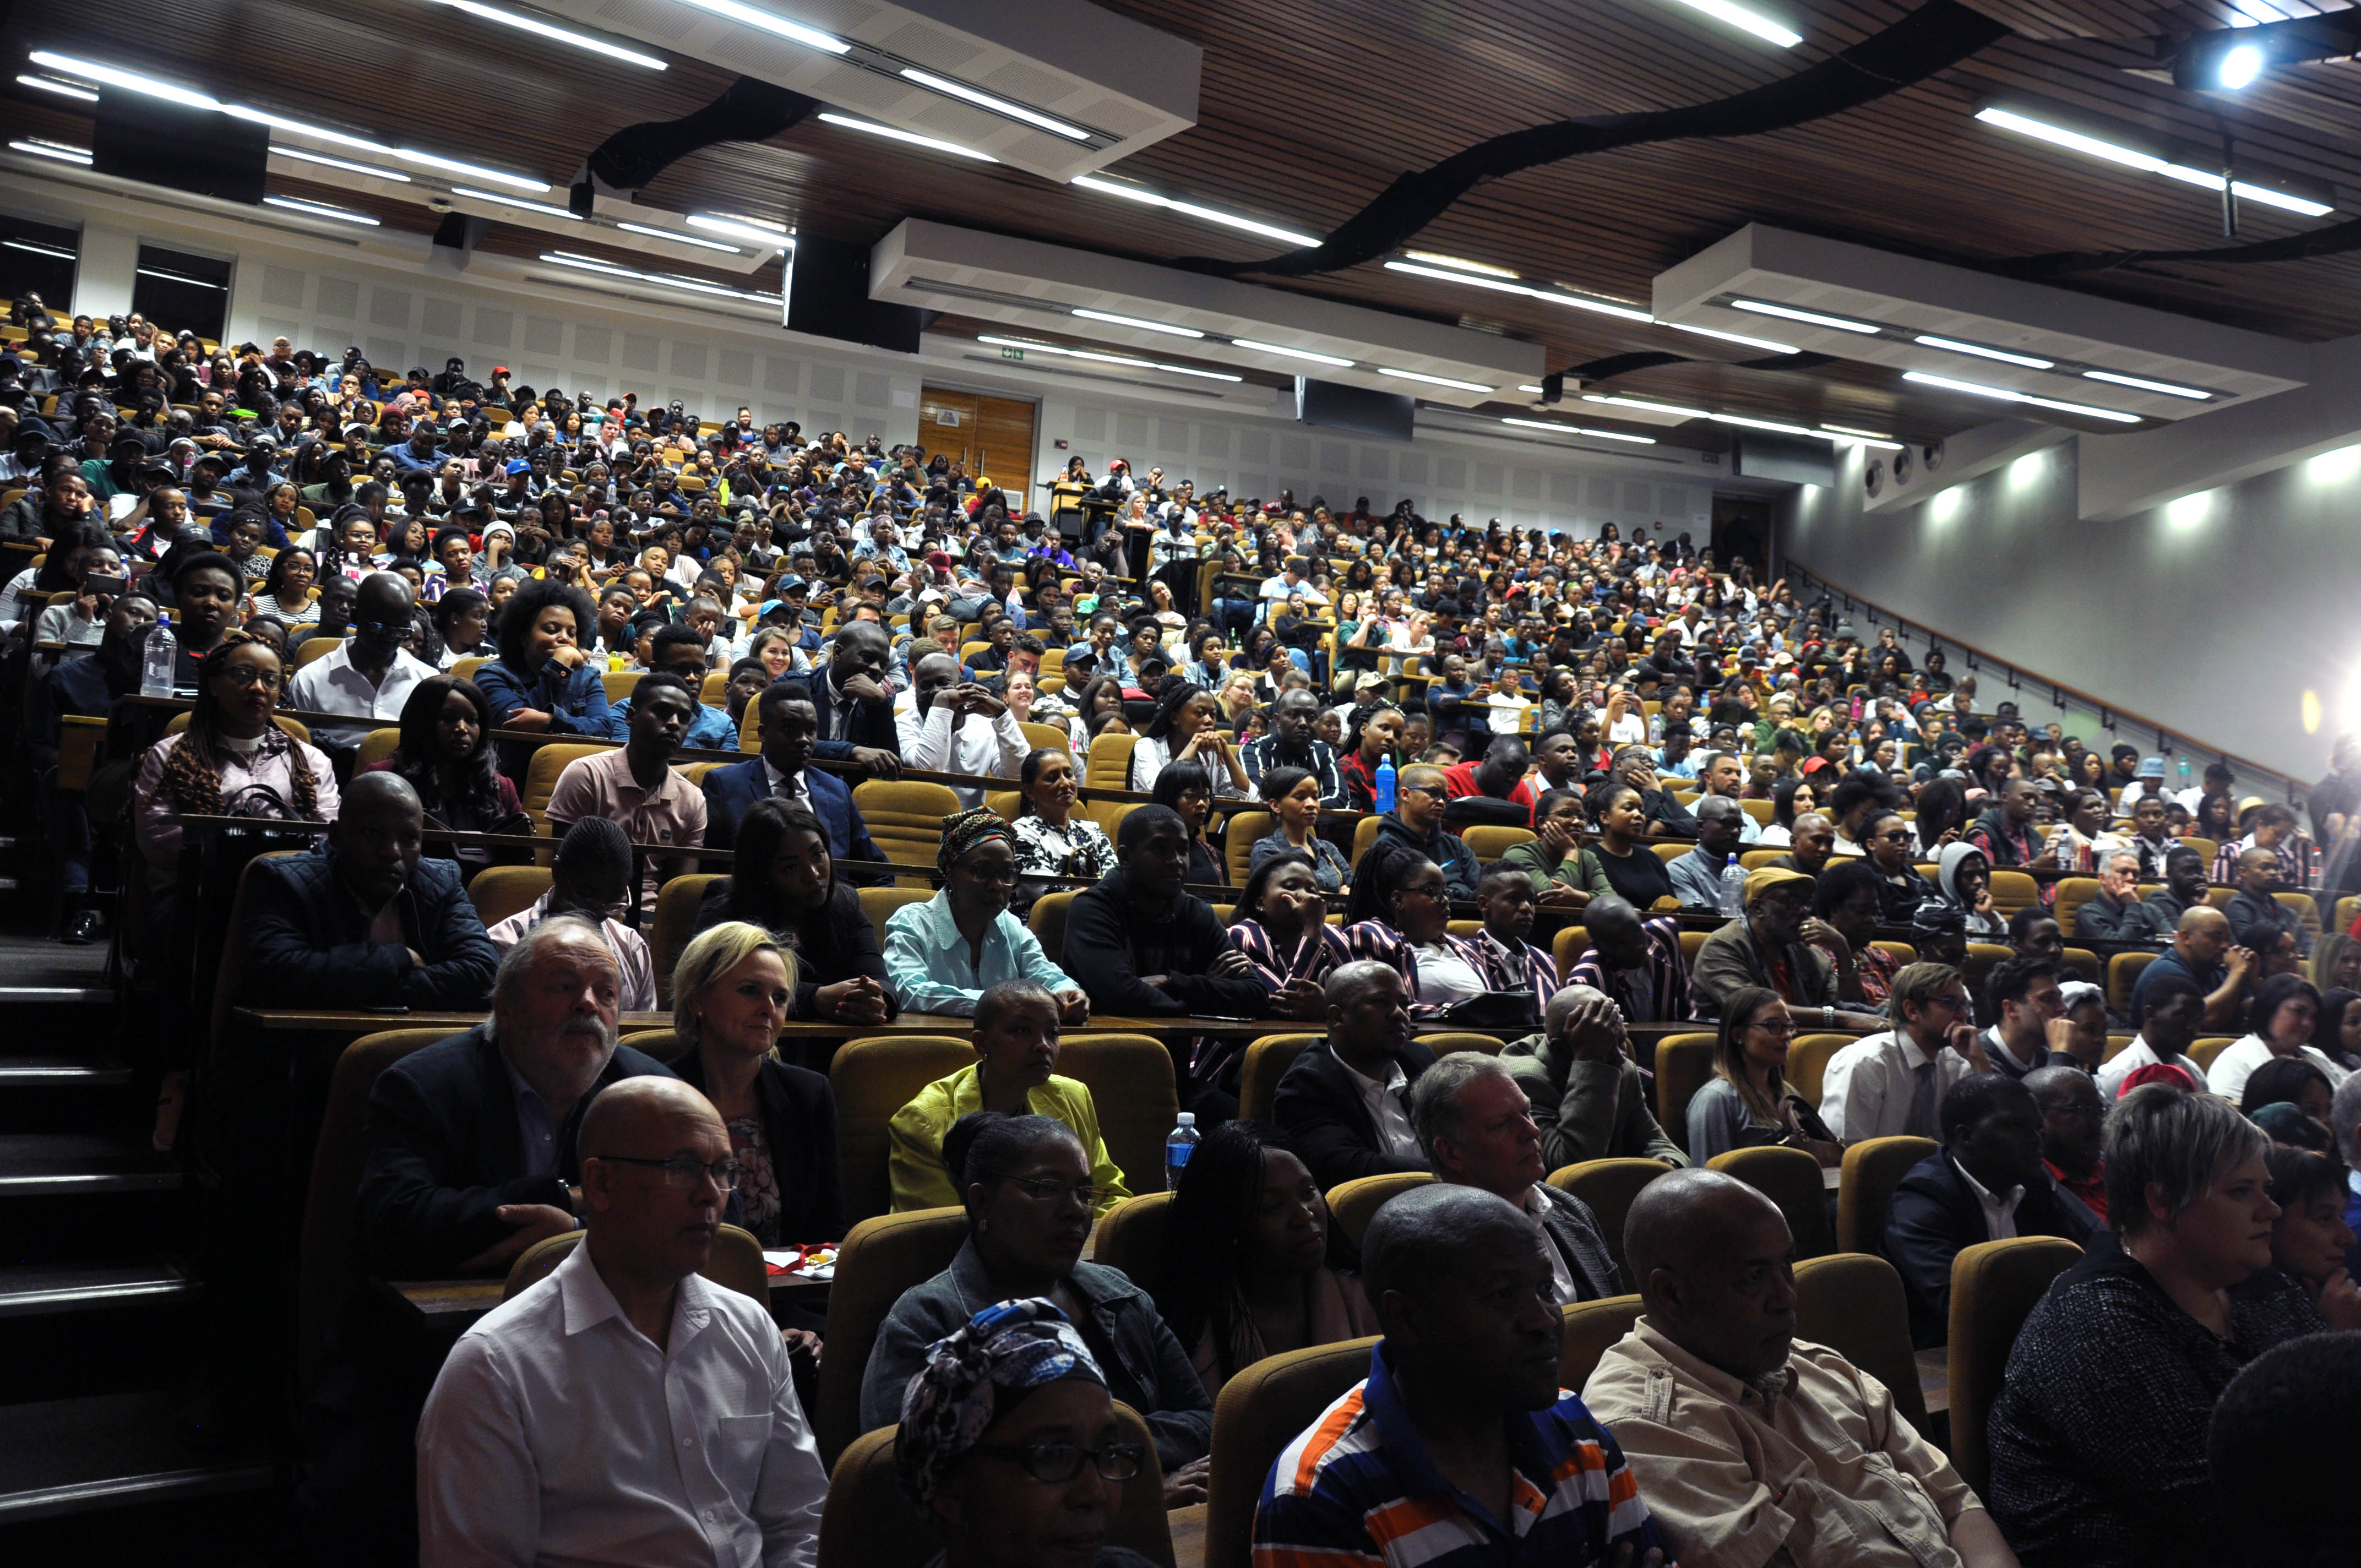 Audience at the Prestige Lecture